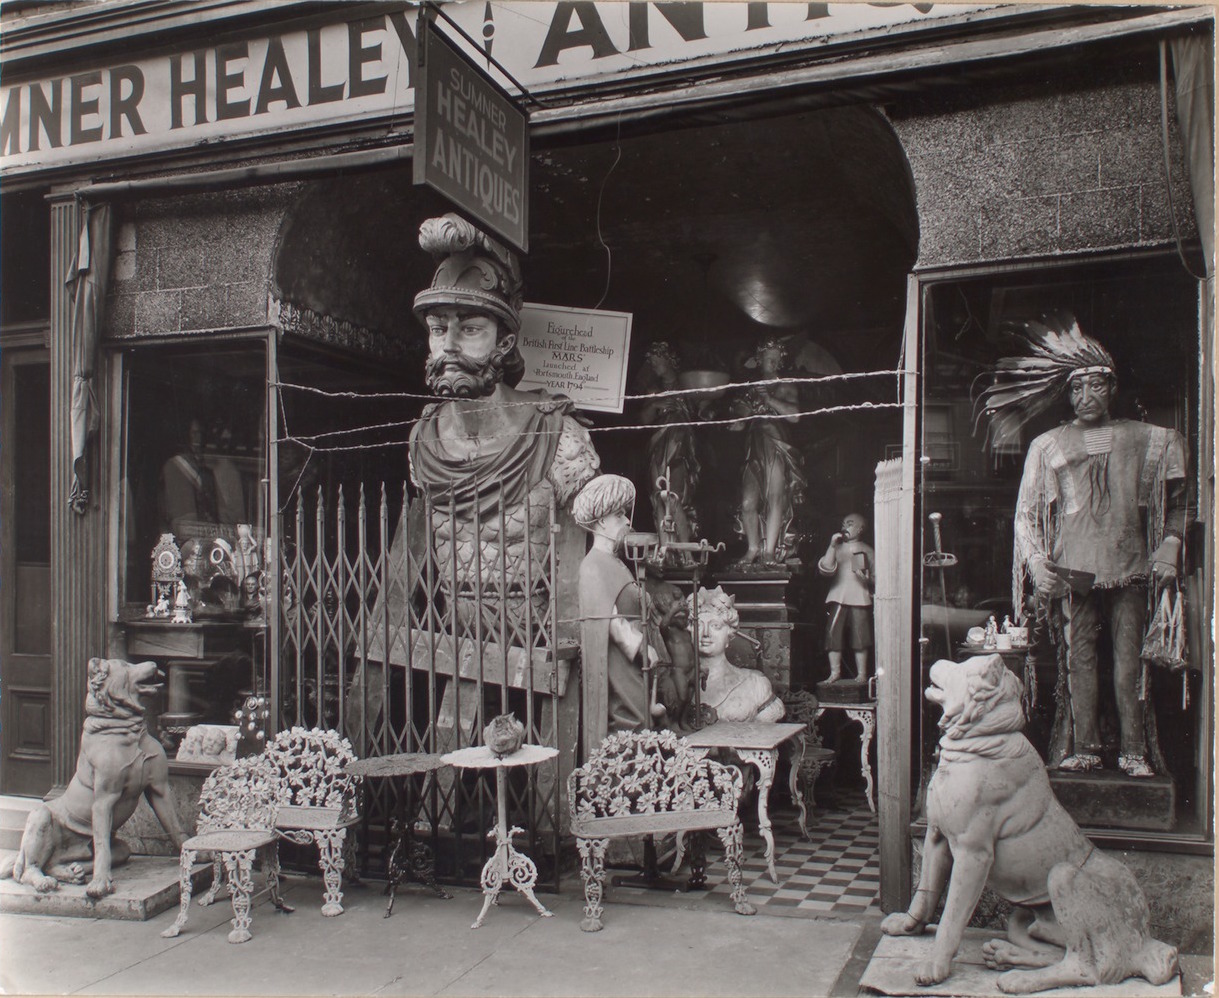 Sumner Healey Antique Shop, Third Avenue near 57th Street, Manhattan